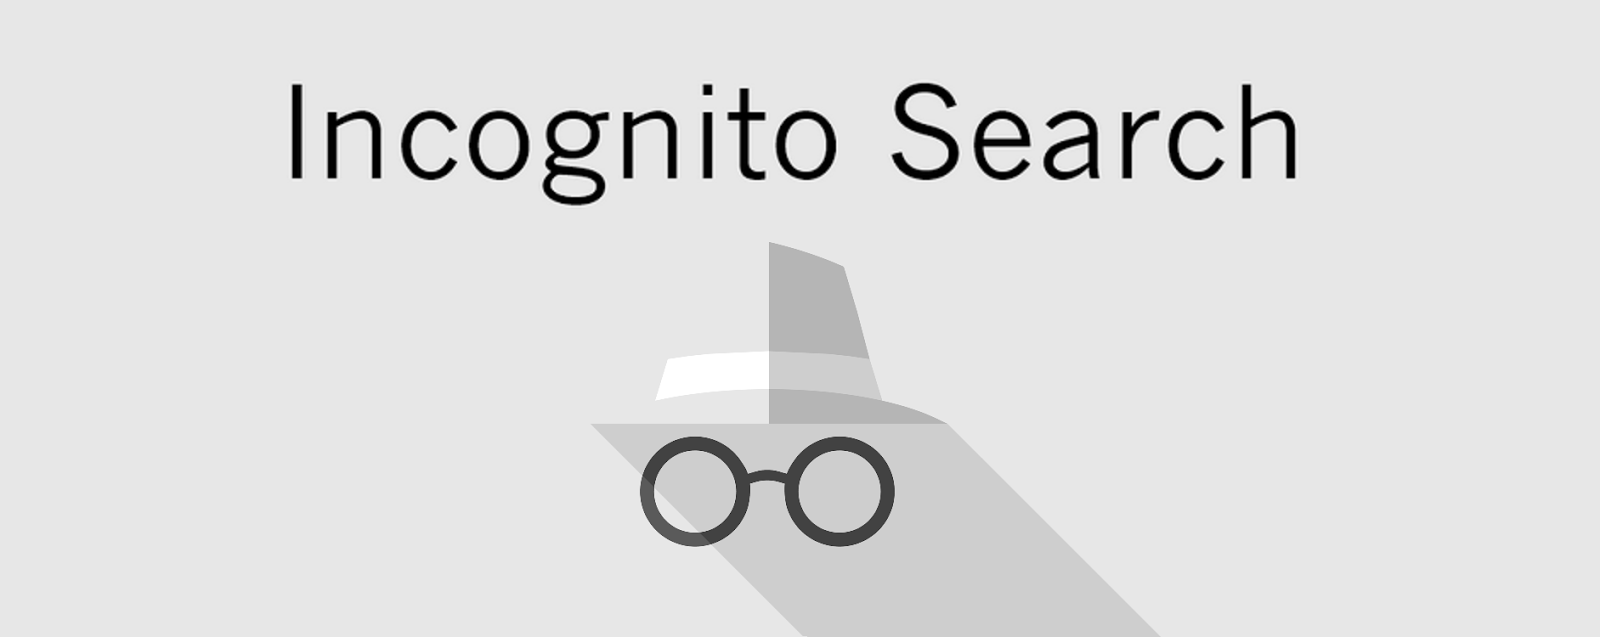 Search Incognito Google Chrome Extension